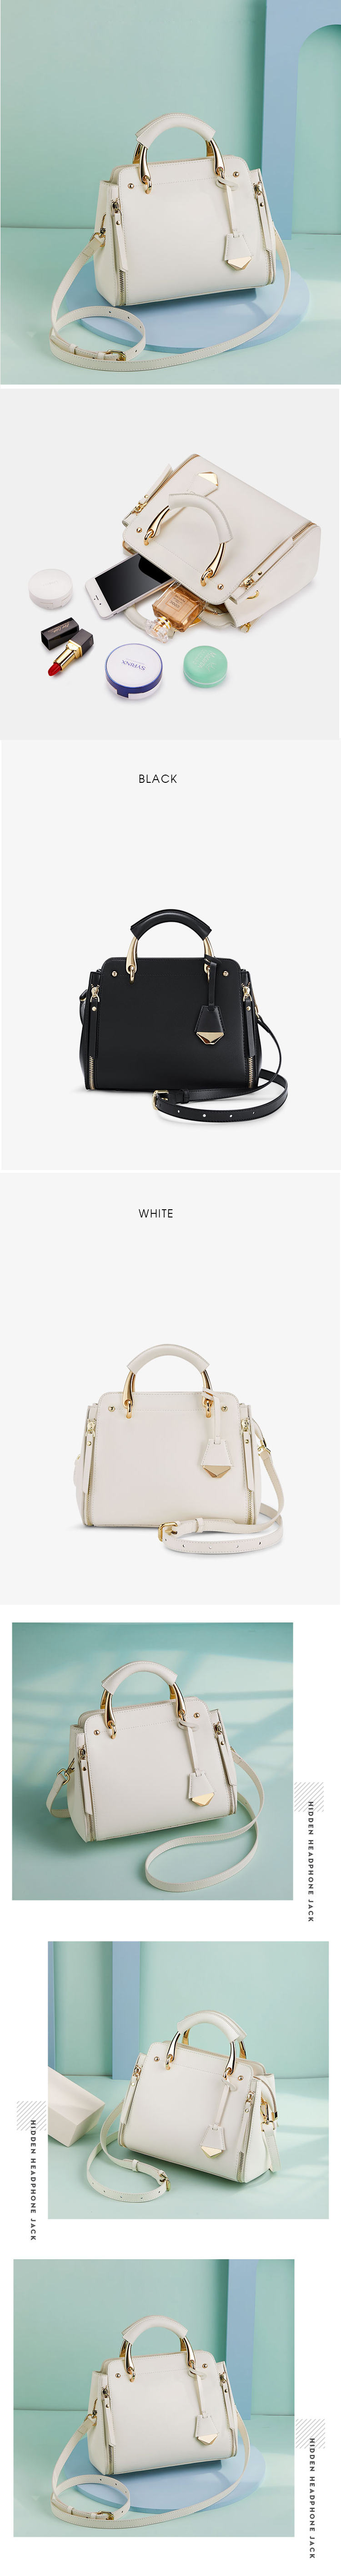 Accept Customized Logo Women Tassel Shoulder Bags Luxury Leather Handbags Solid Color Crossbody Bags For Women Female Handbag